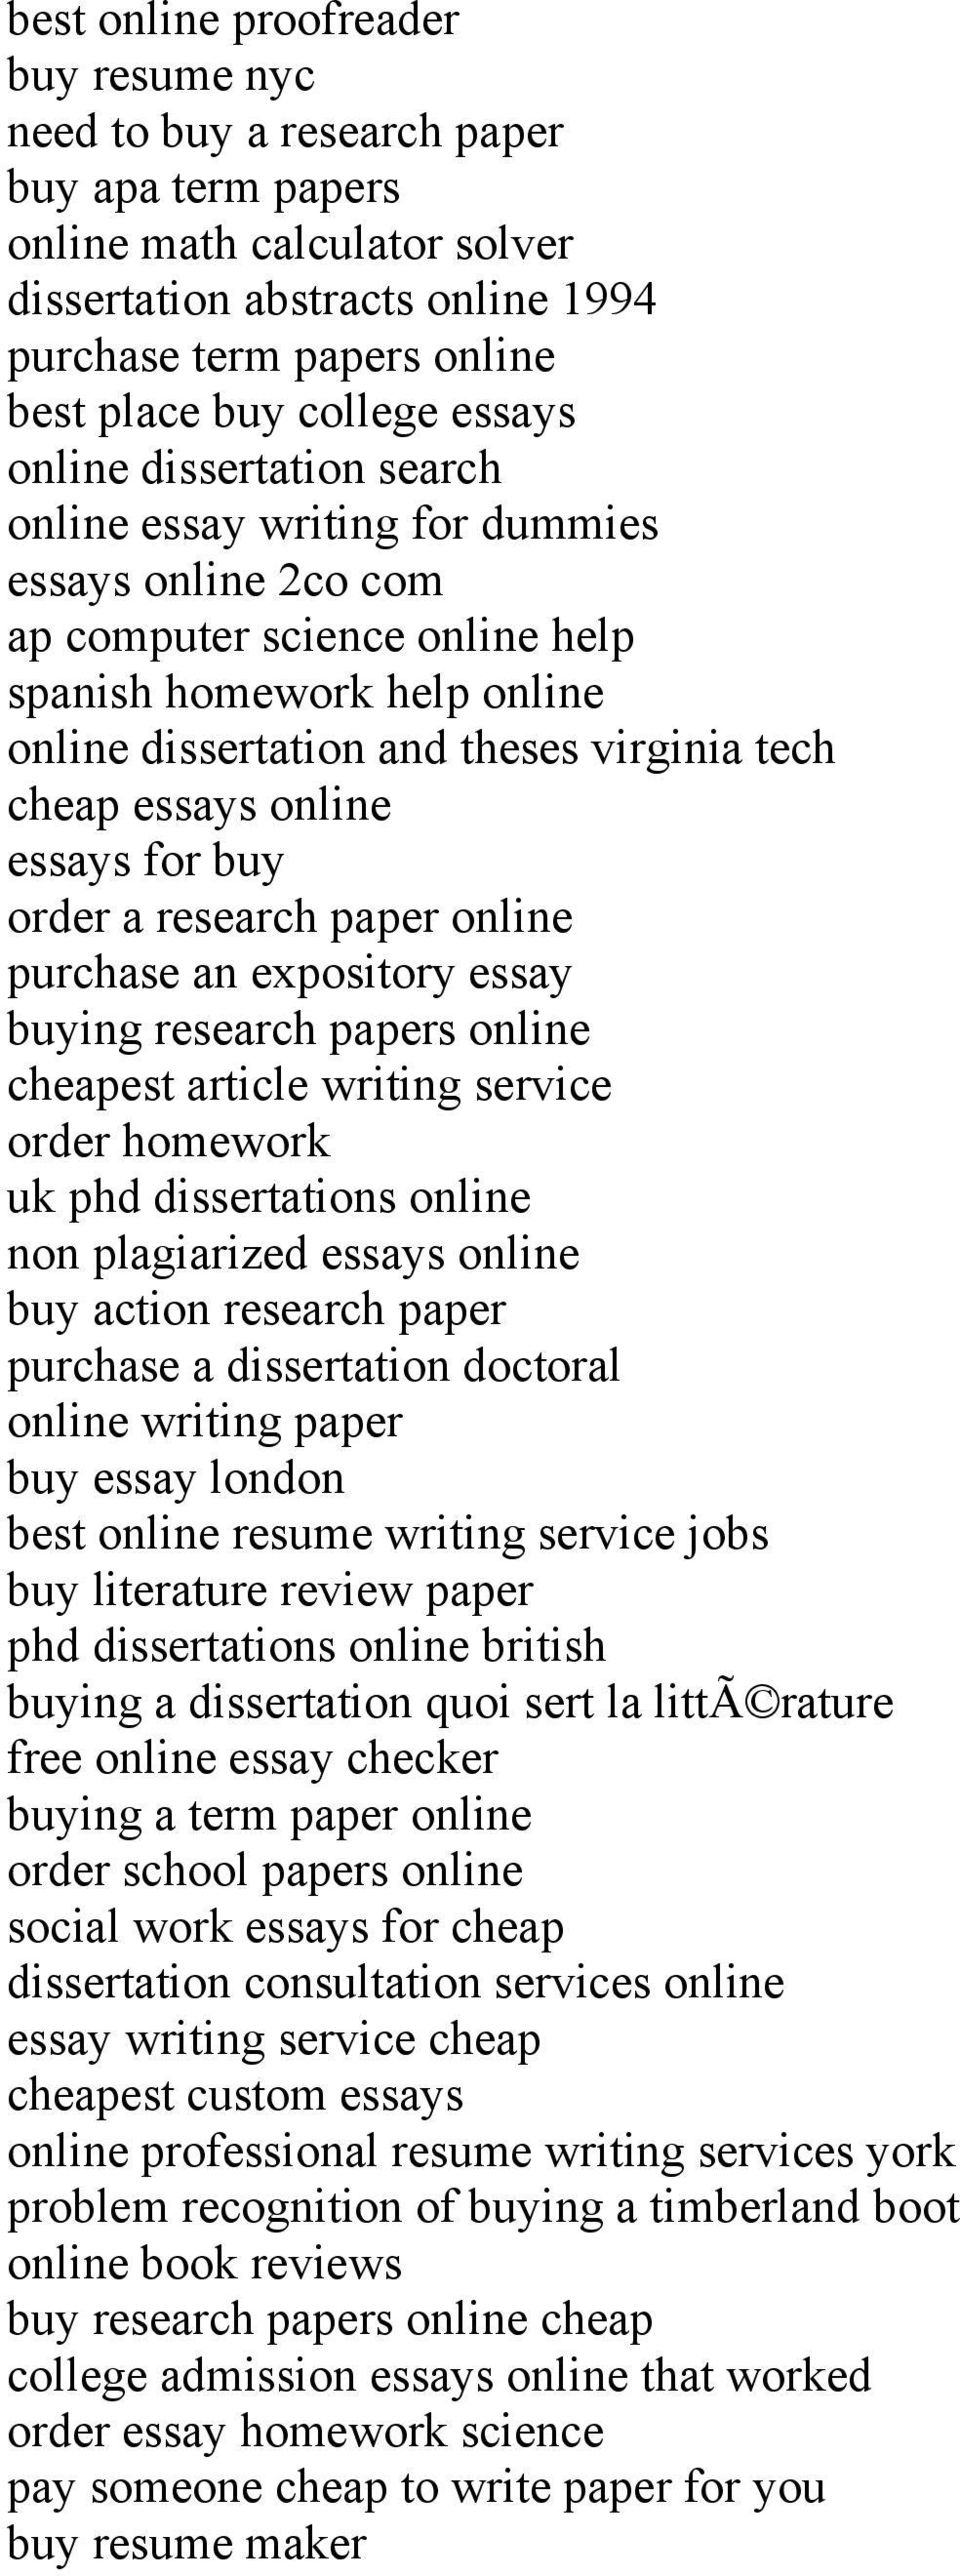 tech cheap essays online essays for buy order a research paper online purchase an expository essay buying research papers online cheapest article writing service order homework uk phd dissertations